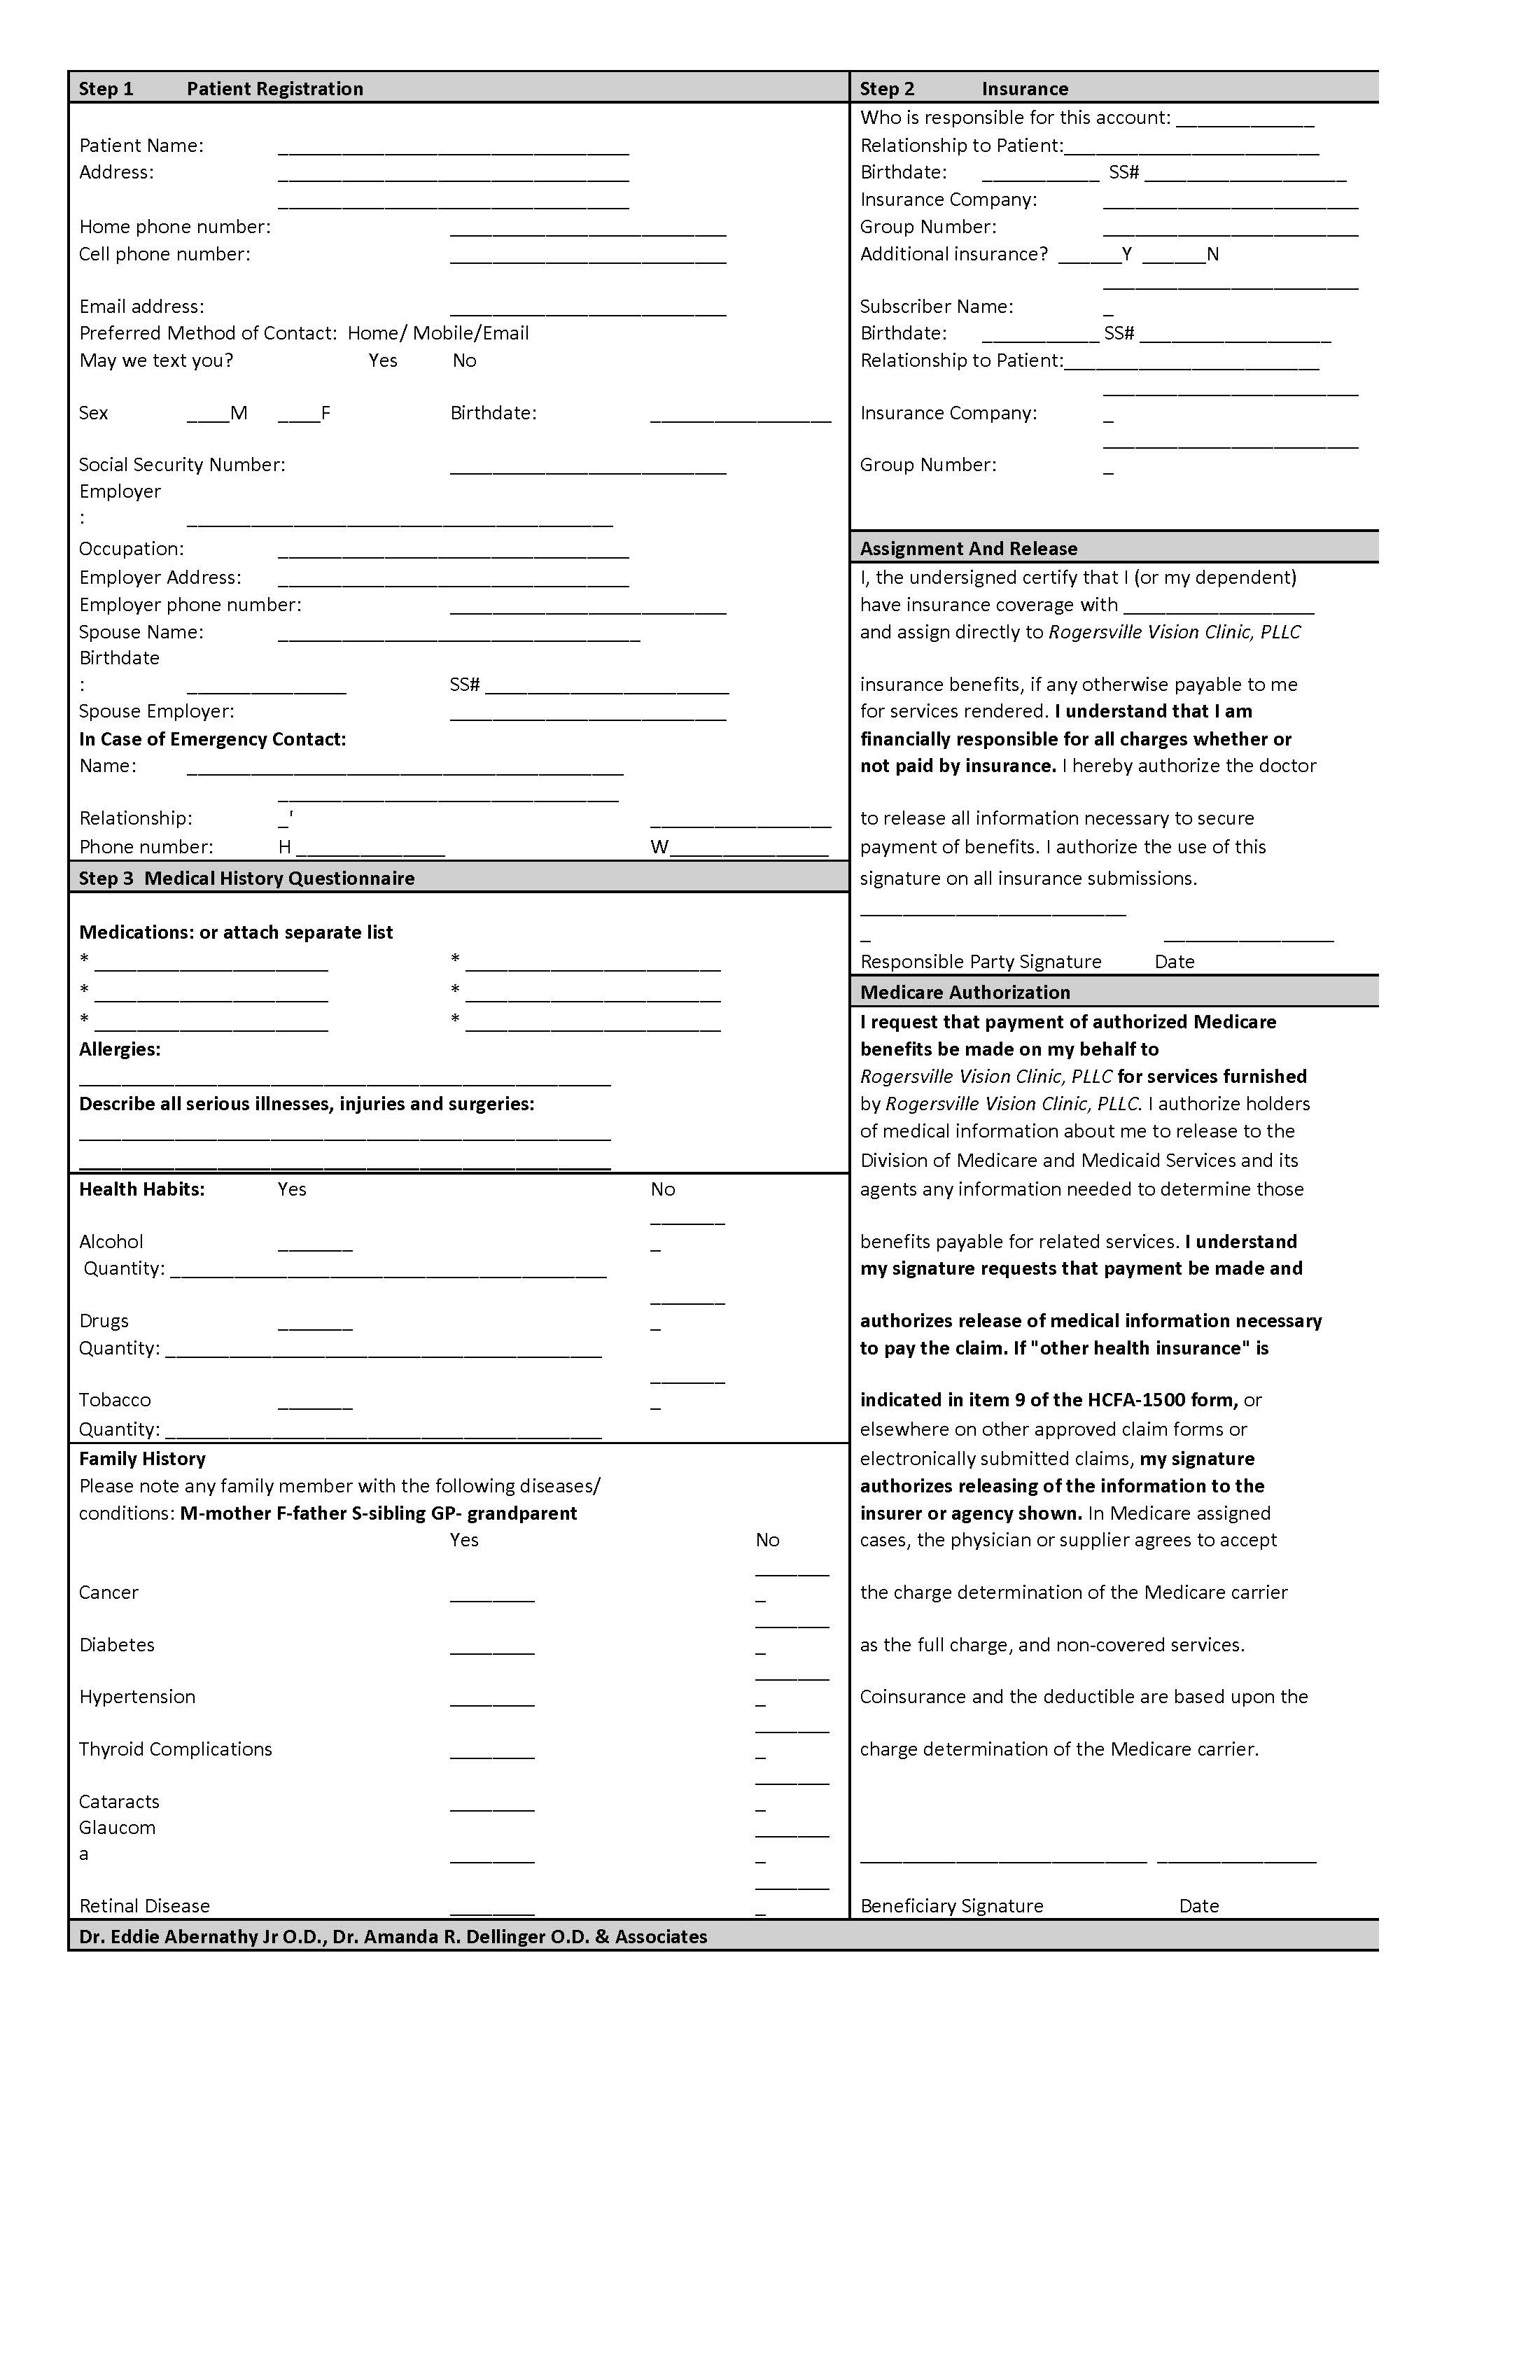 RVC_patient forms pg2.jpg